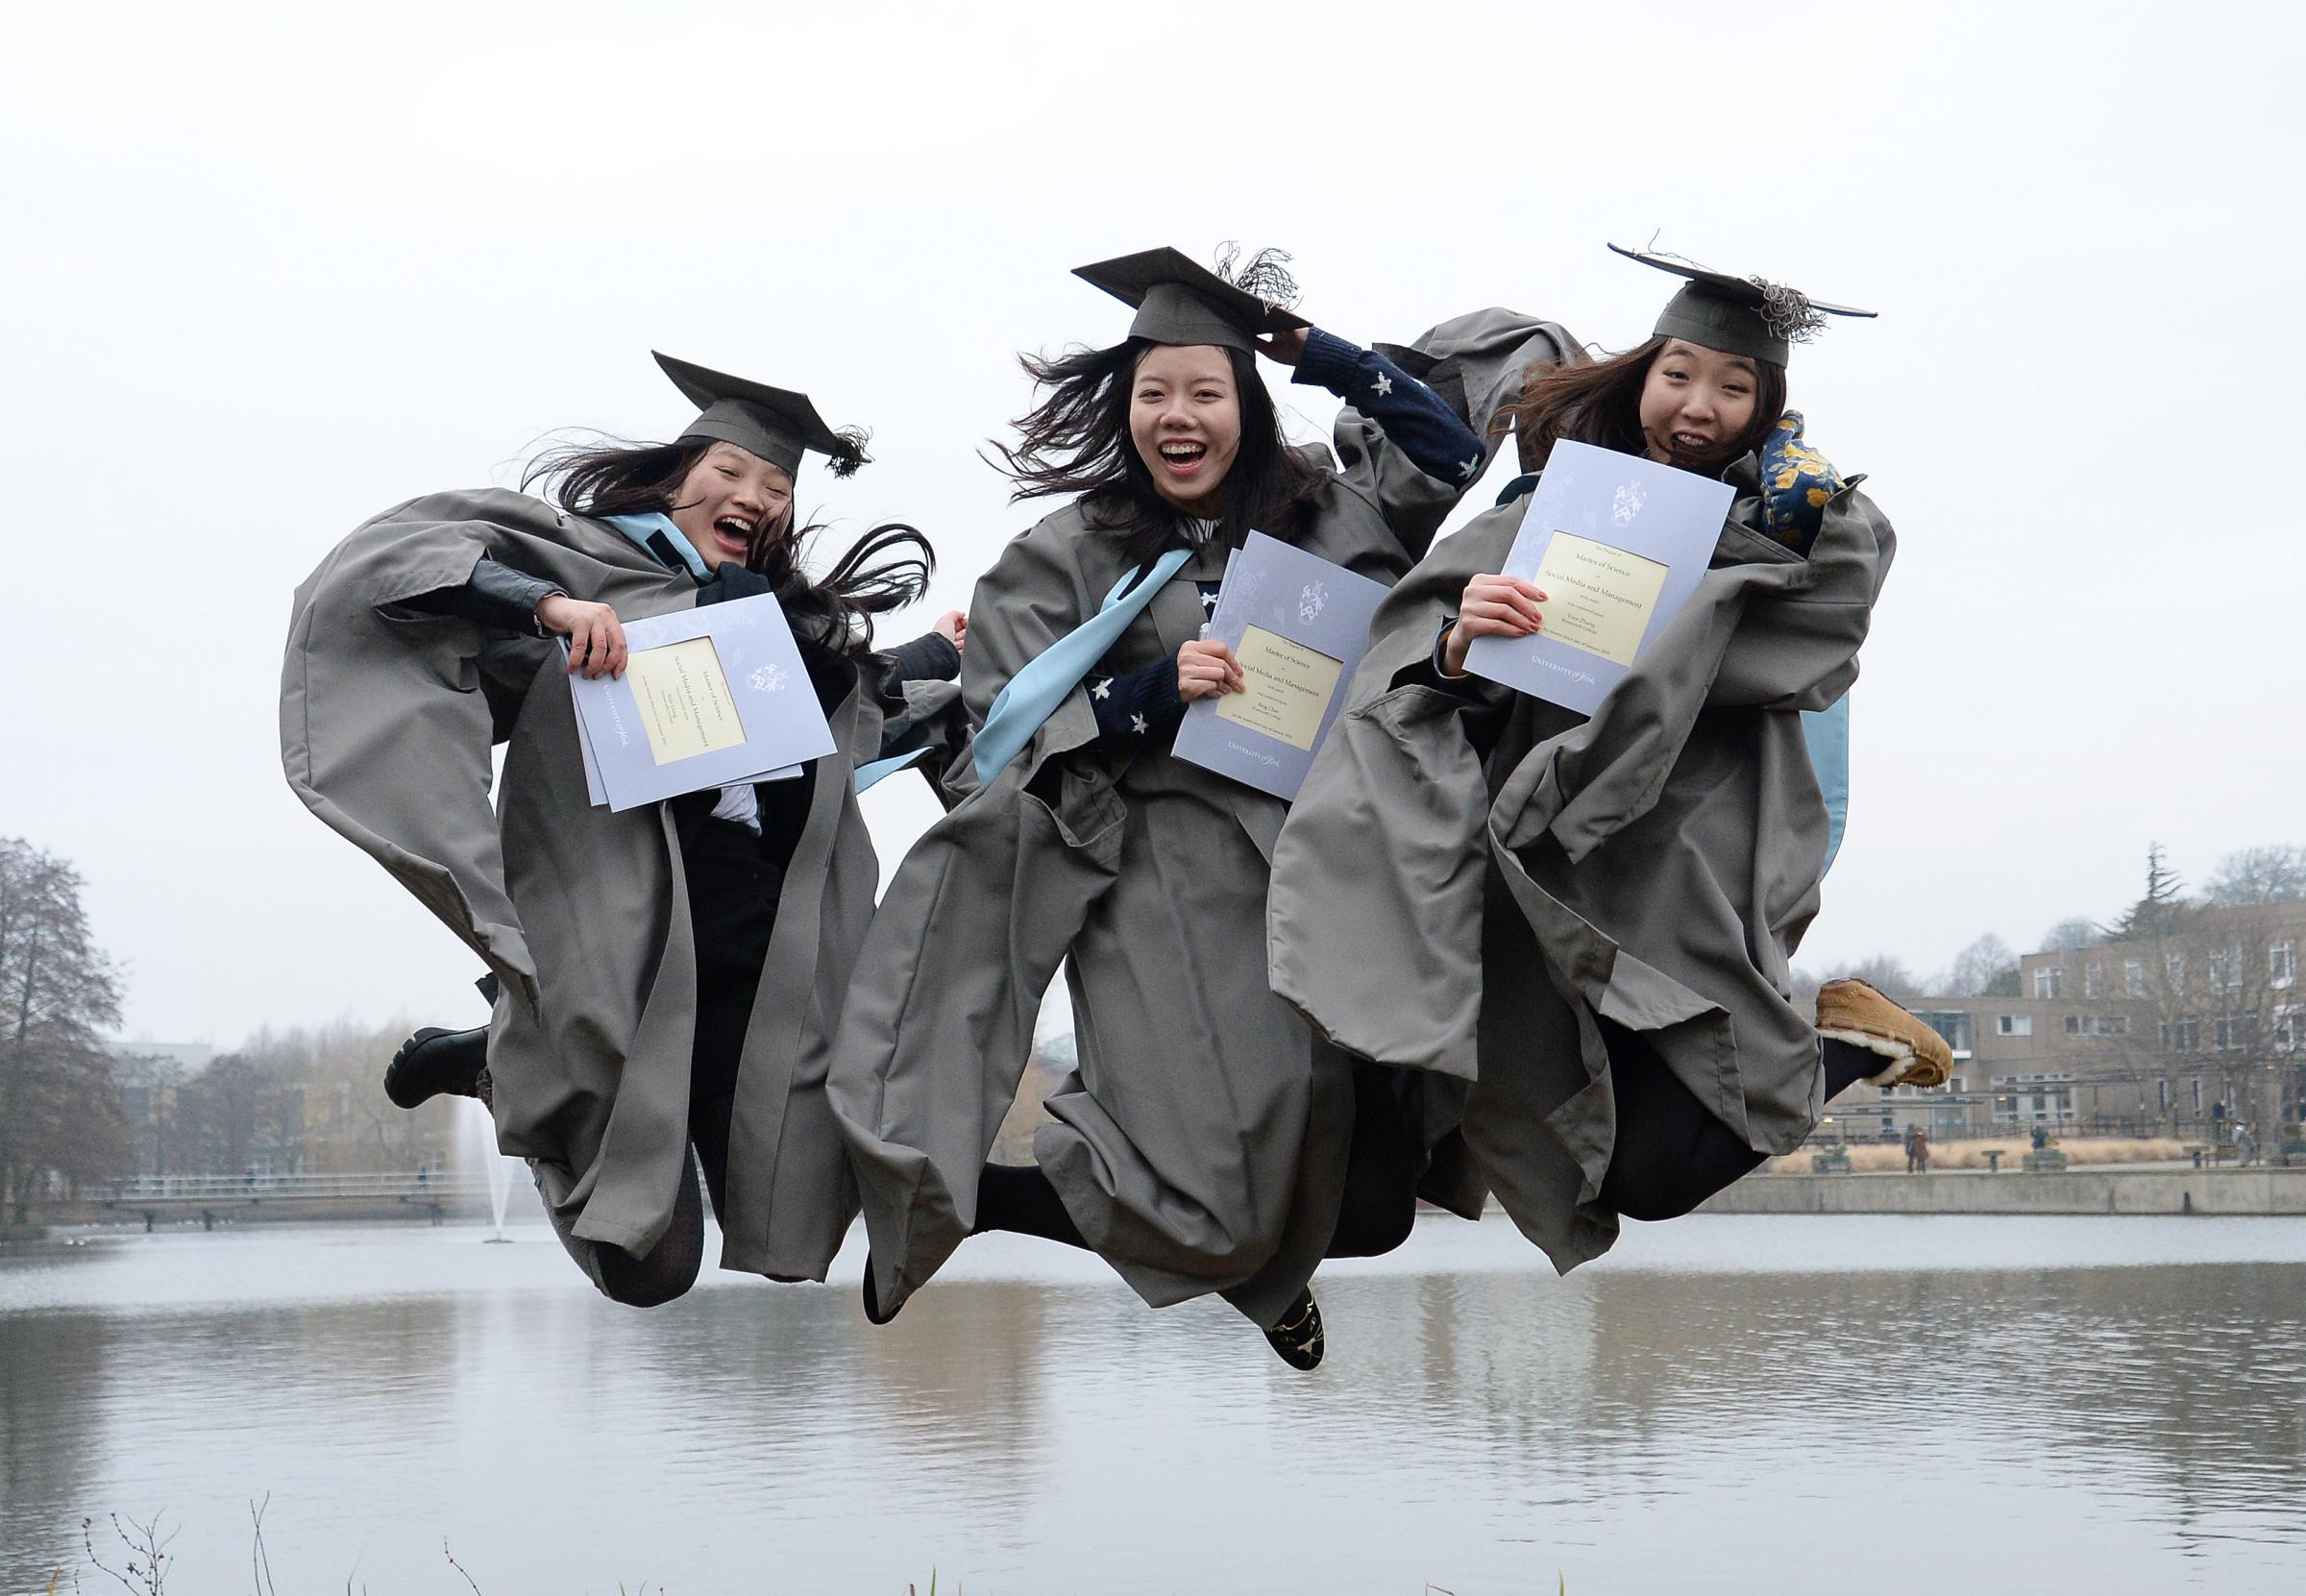 An official photographer will retouch your graduation pictures to ...